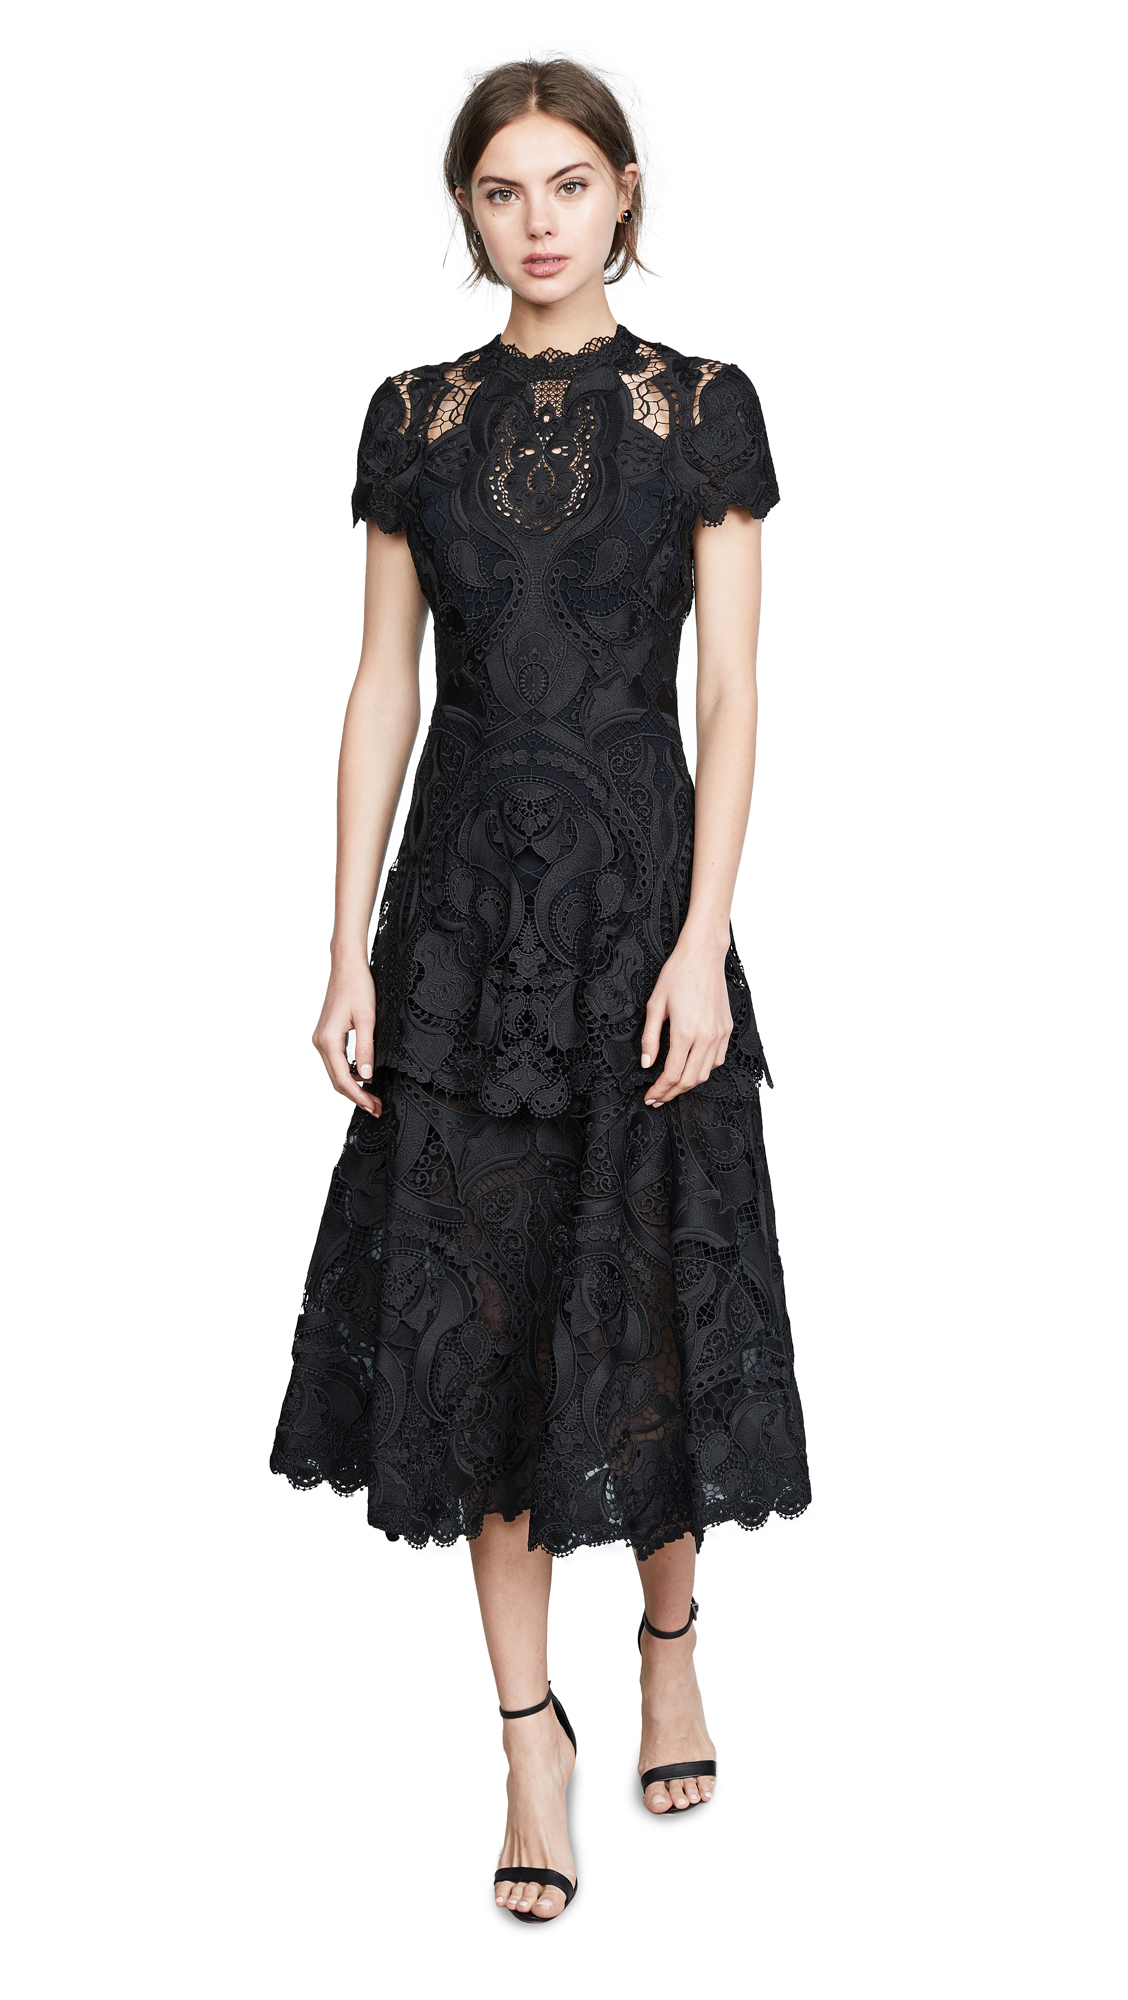 Jonathan Simkhai Crepe Applique Cap Sleeve Midi Dress In Black